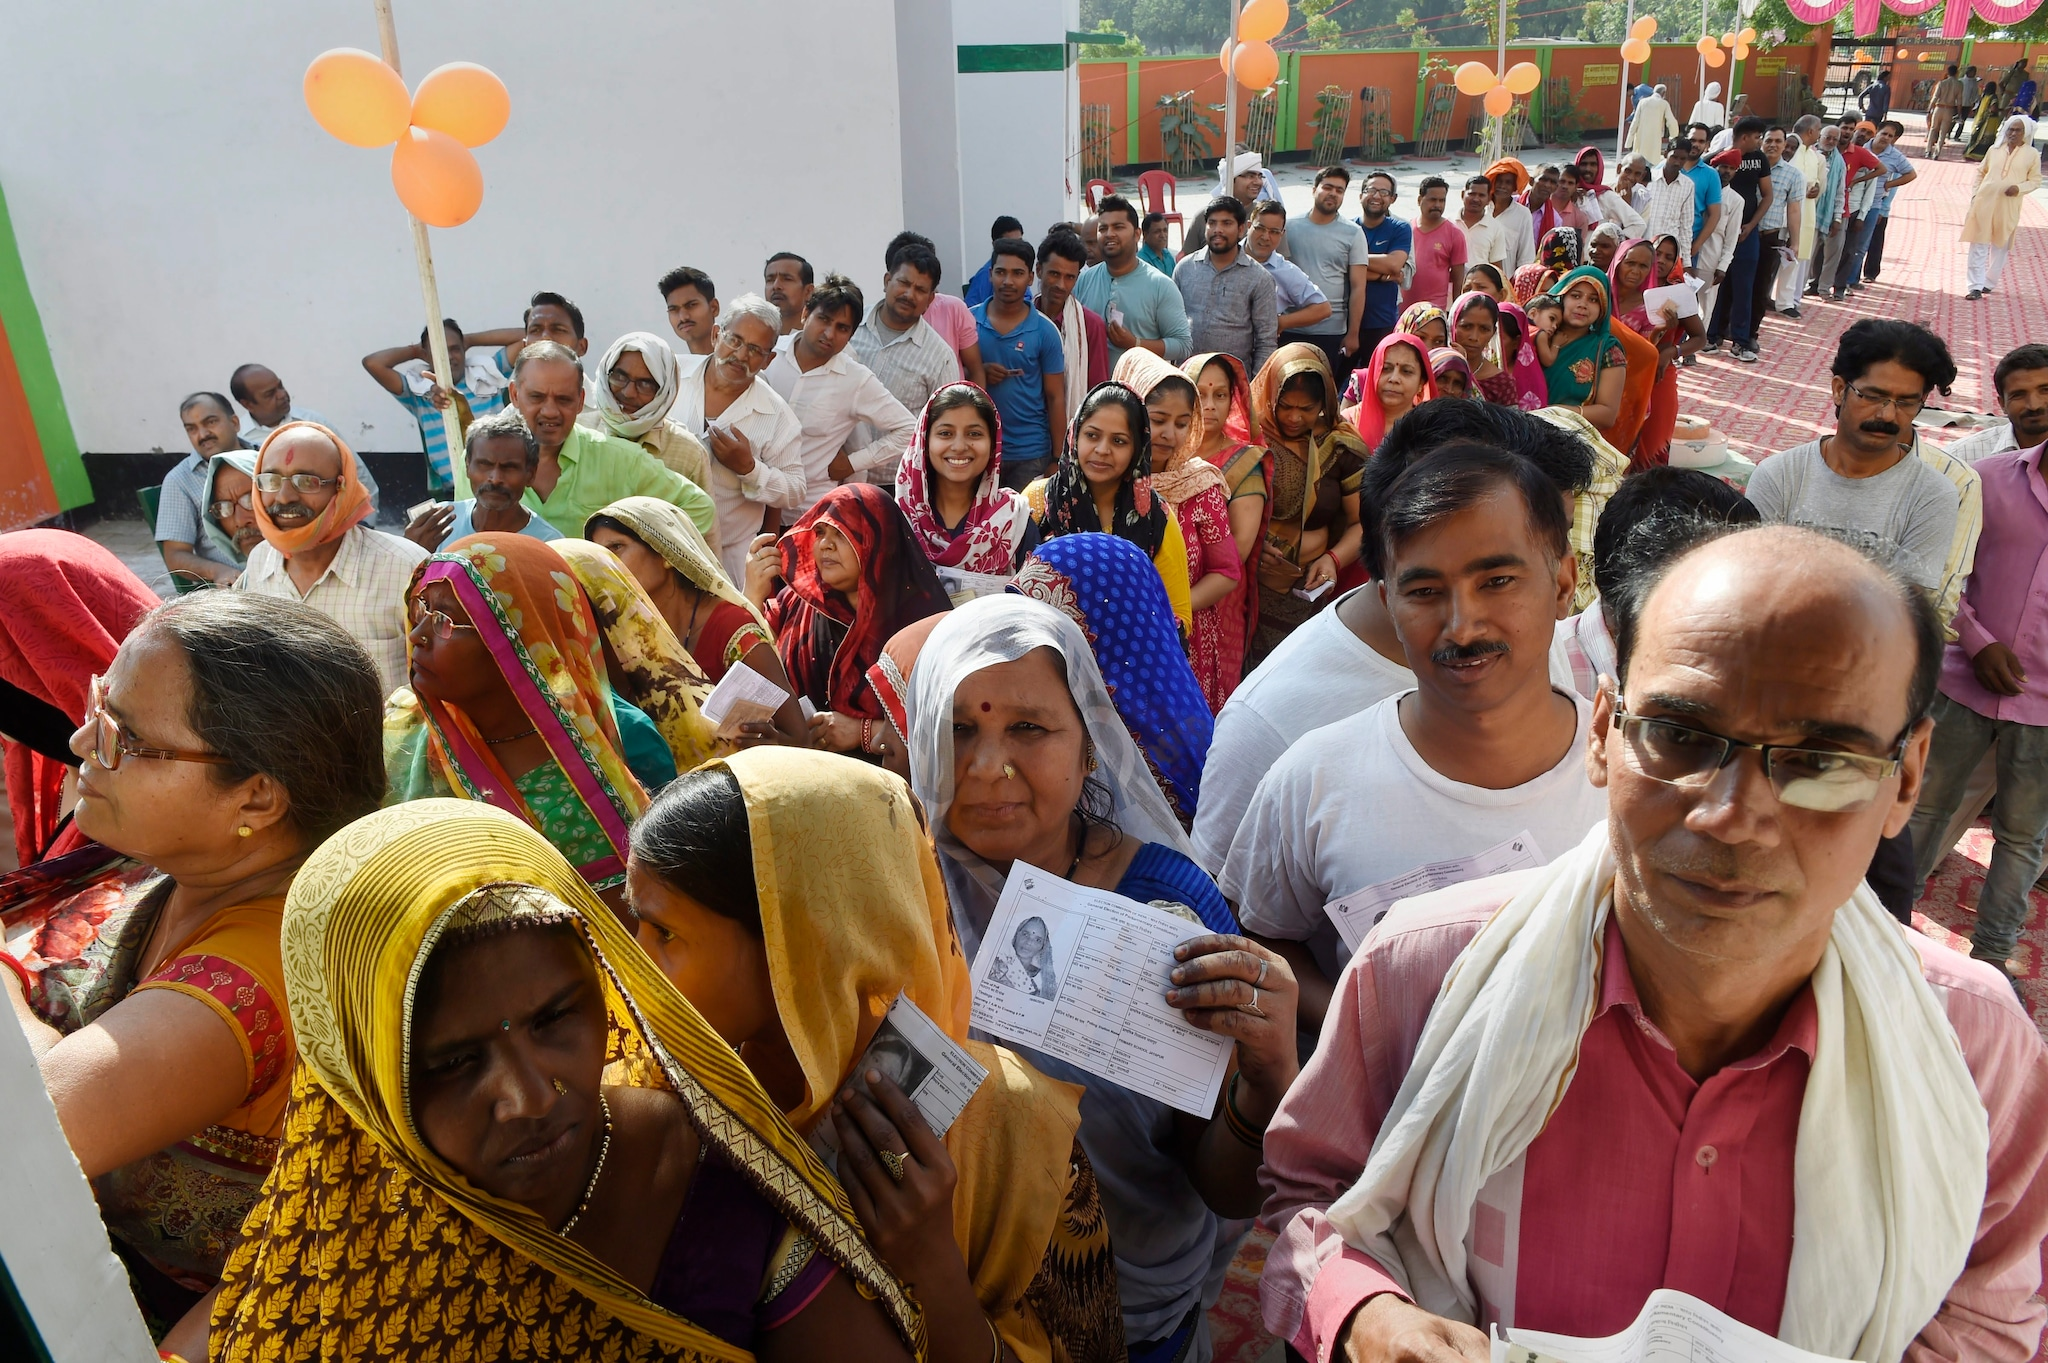 Voters wait in queues to cast their votes at a polling station, during the seventh phase of Lok Sabha elections, at Jayapur village in Varanasi, Sunday, May 19, 2019. Jayapur, is one of the villages adopted by Prime Miniter Narendra Modi during a drive which began in 2014 under the Sansad Adarsh Gram Yojana.